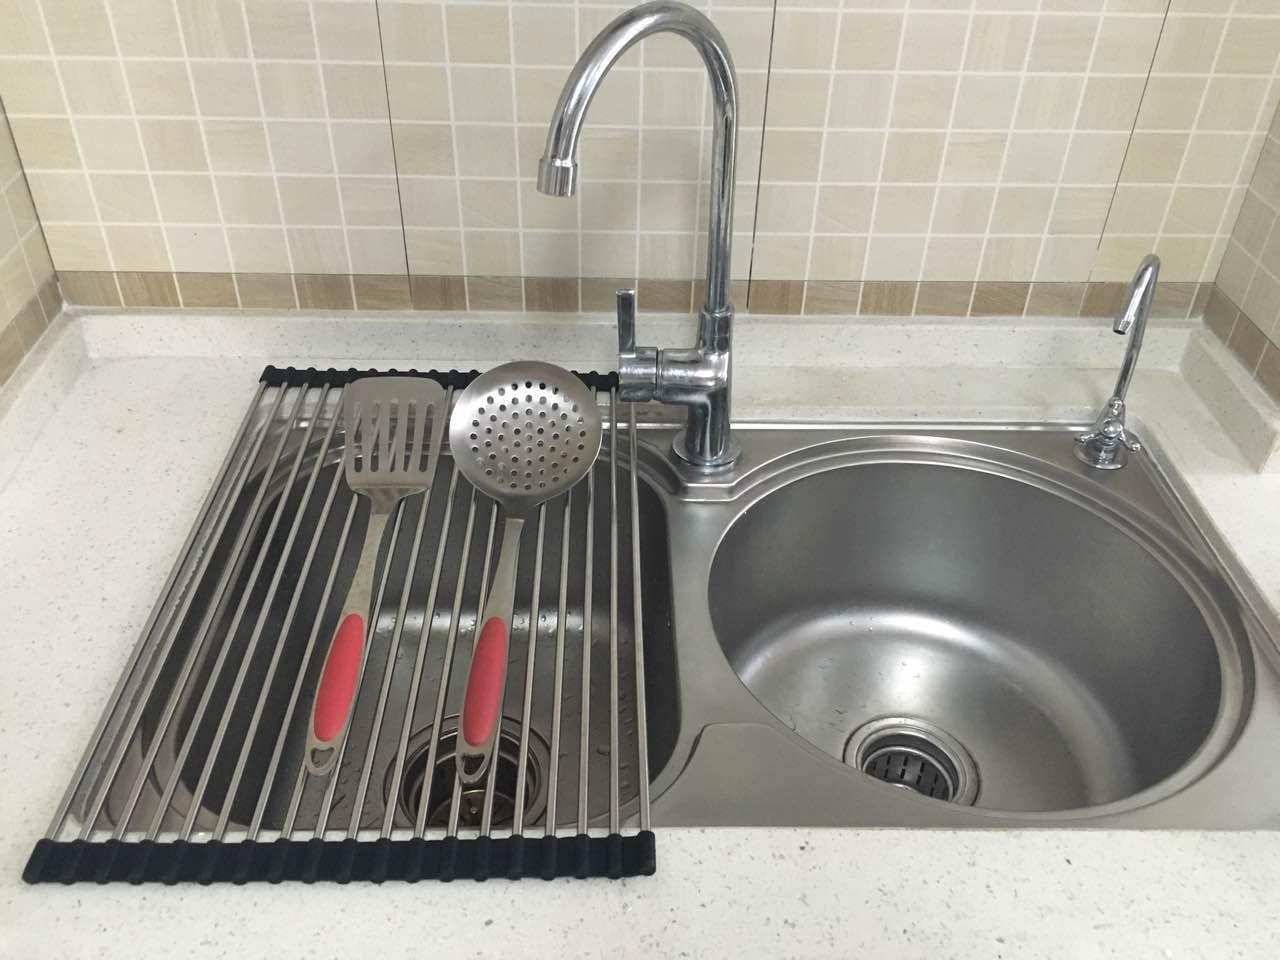 Rollup Dish Drying Rack Foldable Stainless Steel Over Sink Rack